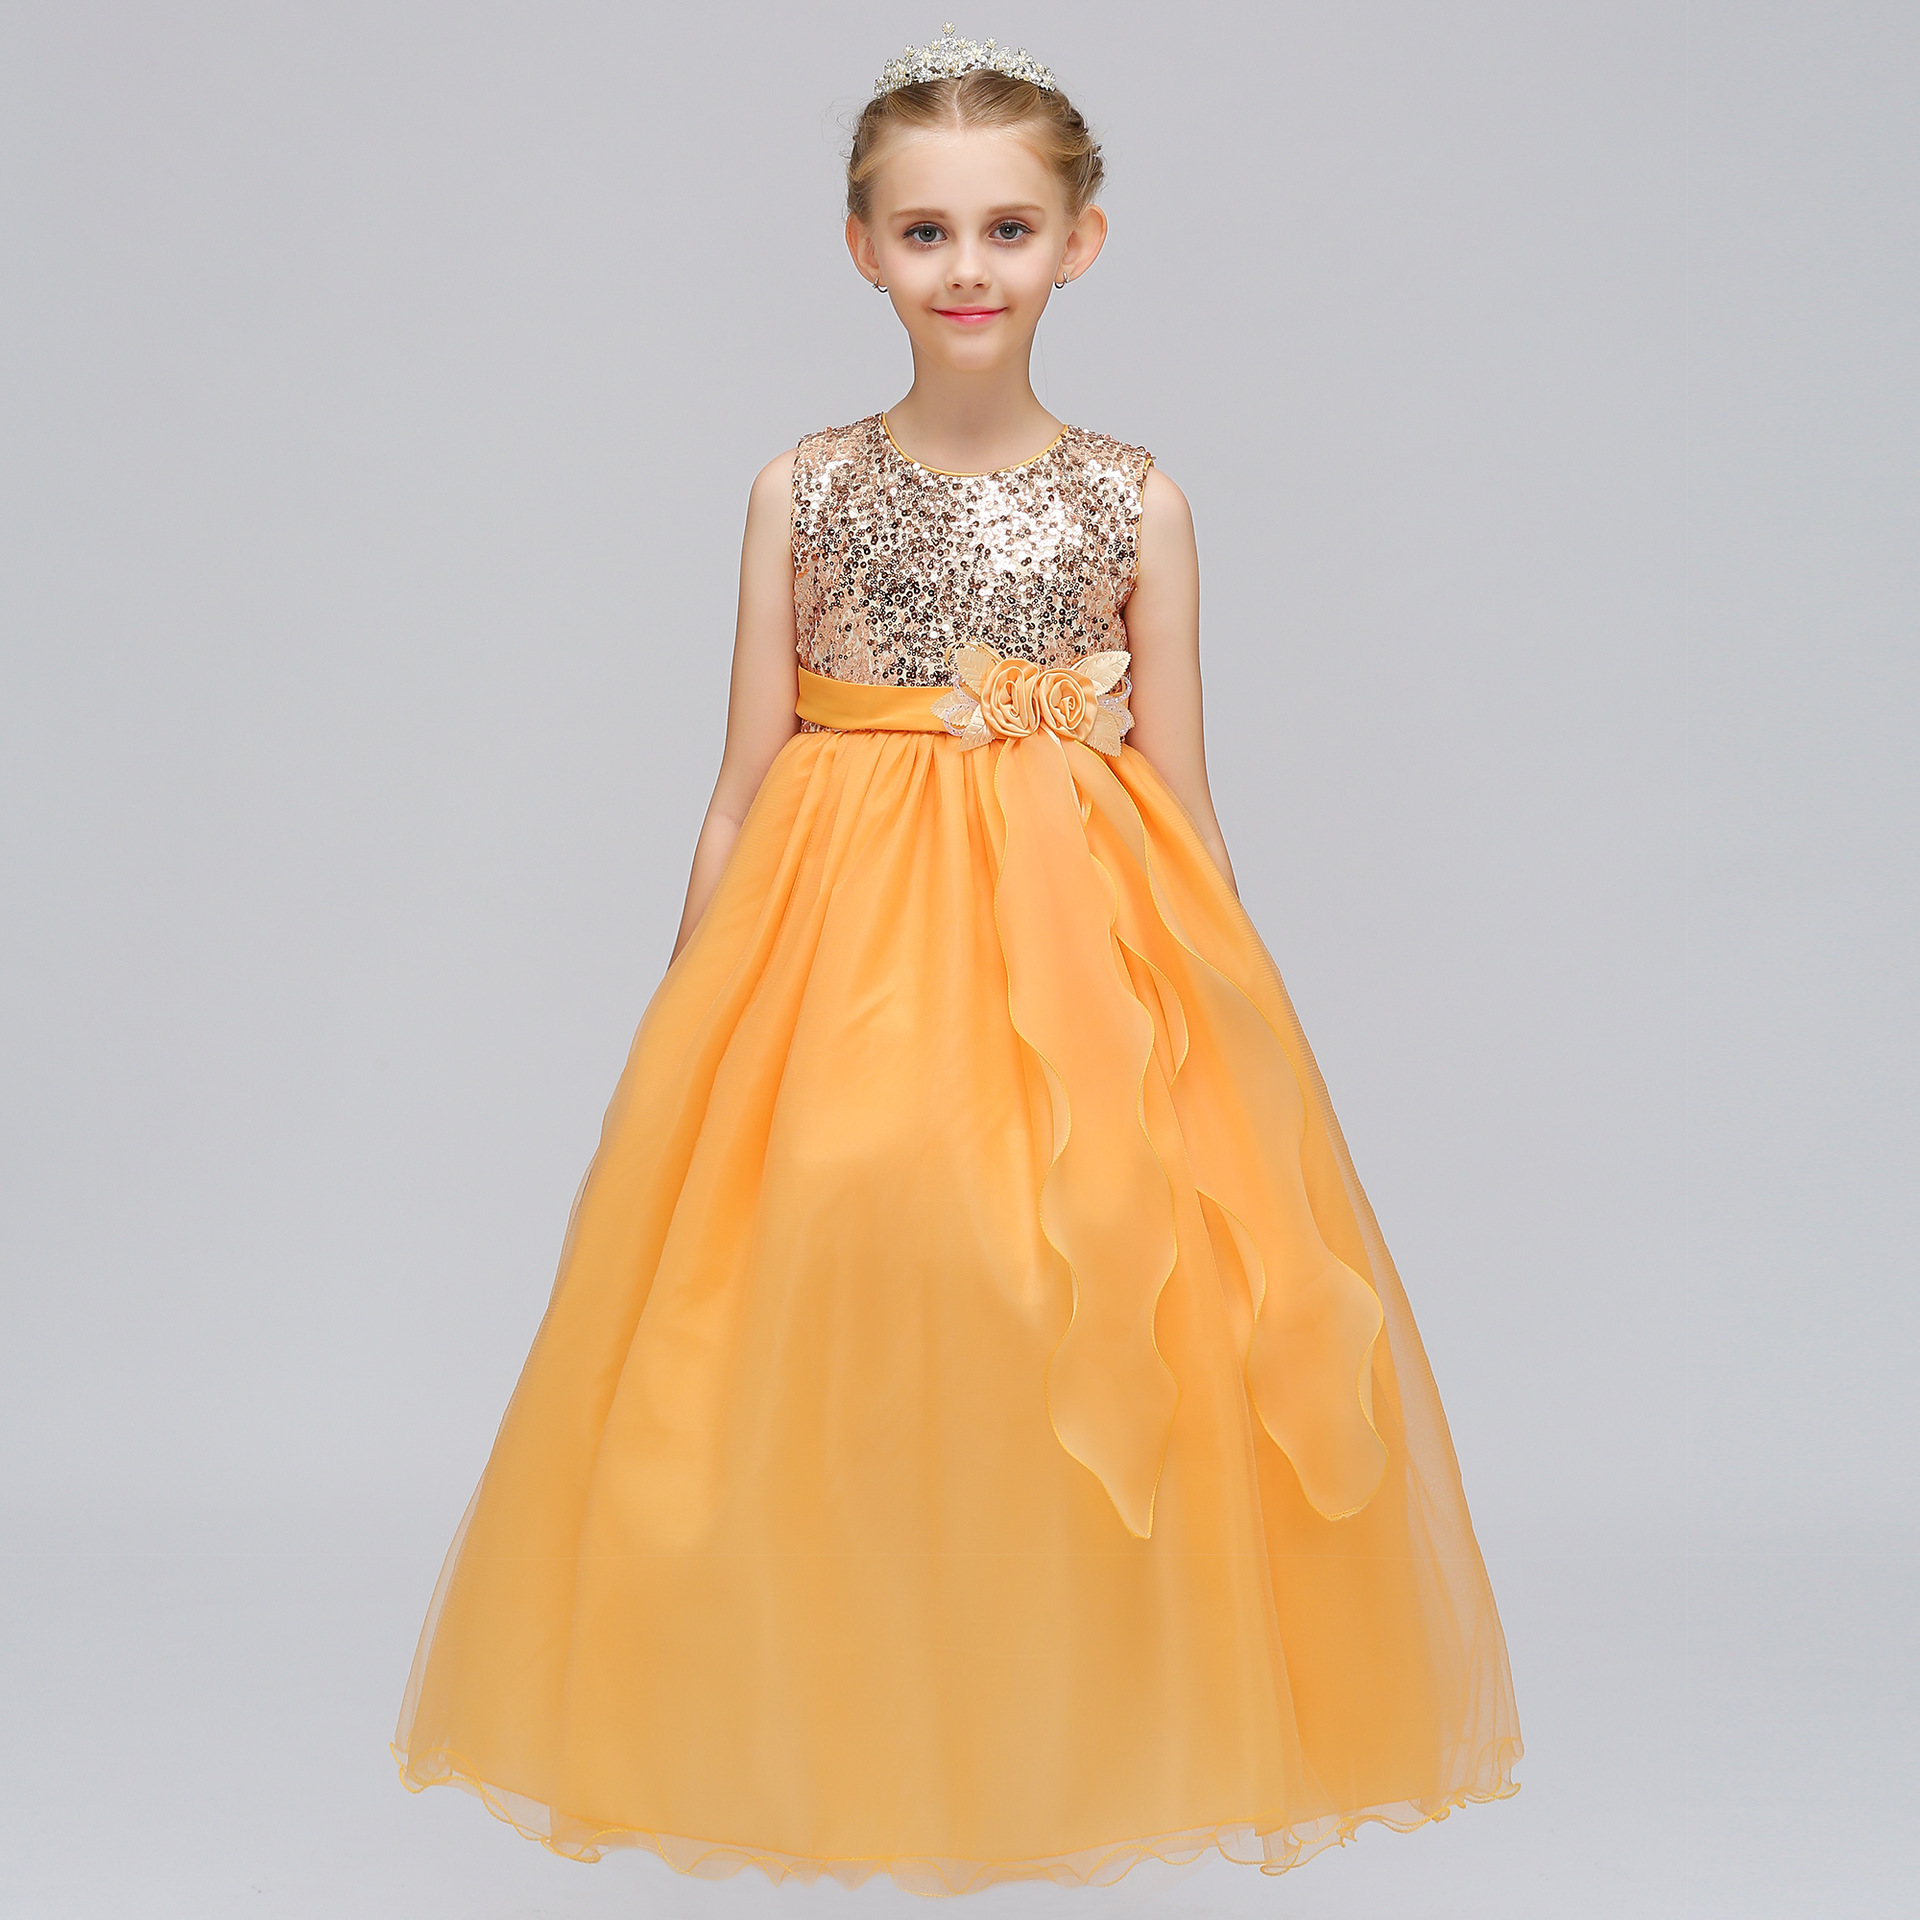 Enfant Robe Cocktail Mariage Et Evenement Yellow Dress Long Gowns Gold Sequin Prom Occasion Dresses for 5 To 15 Year Olds